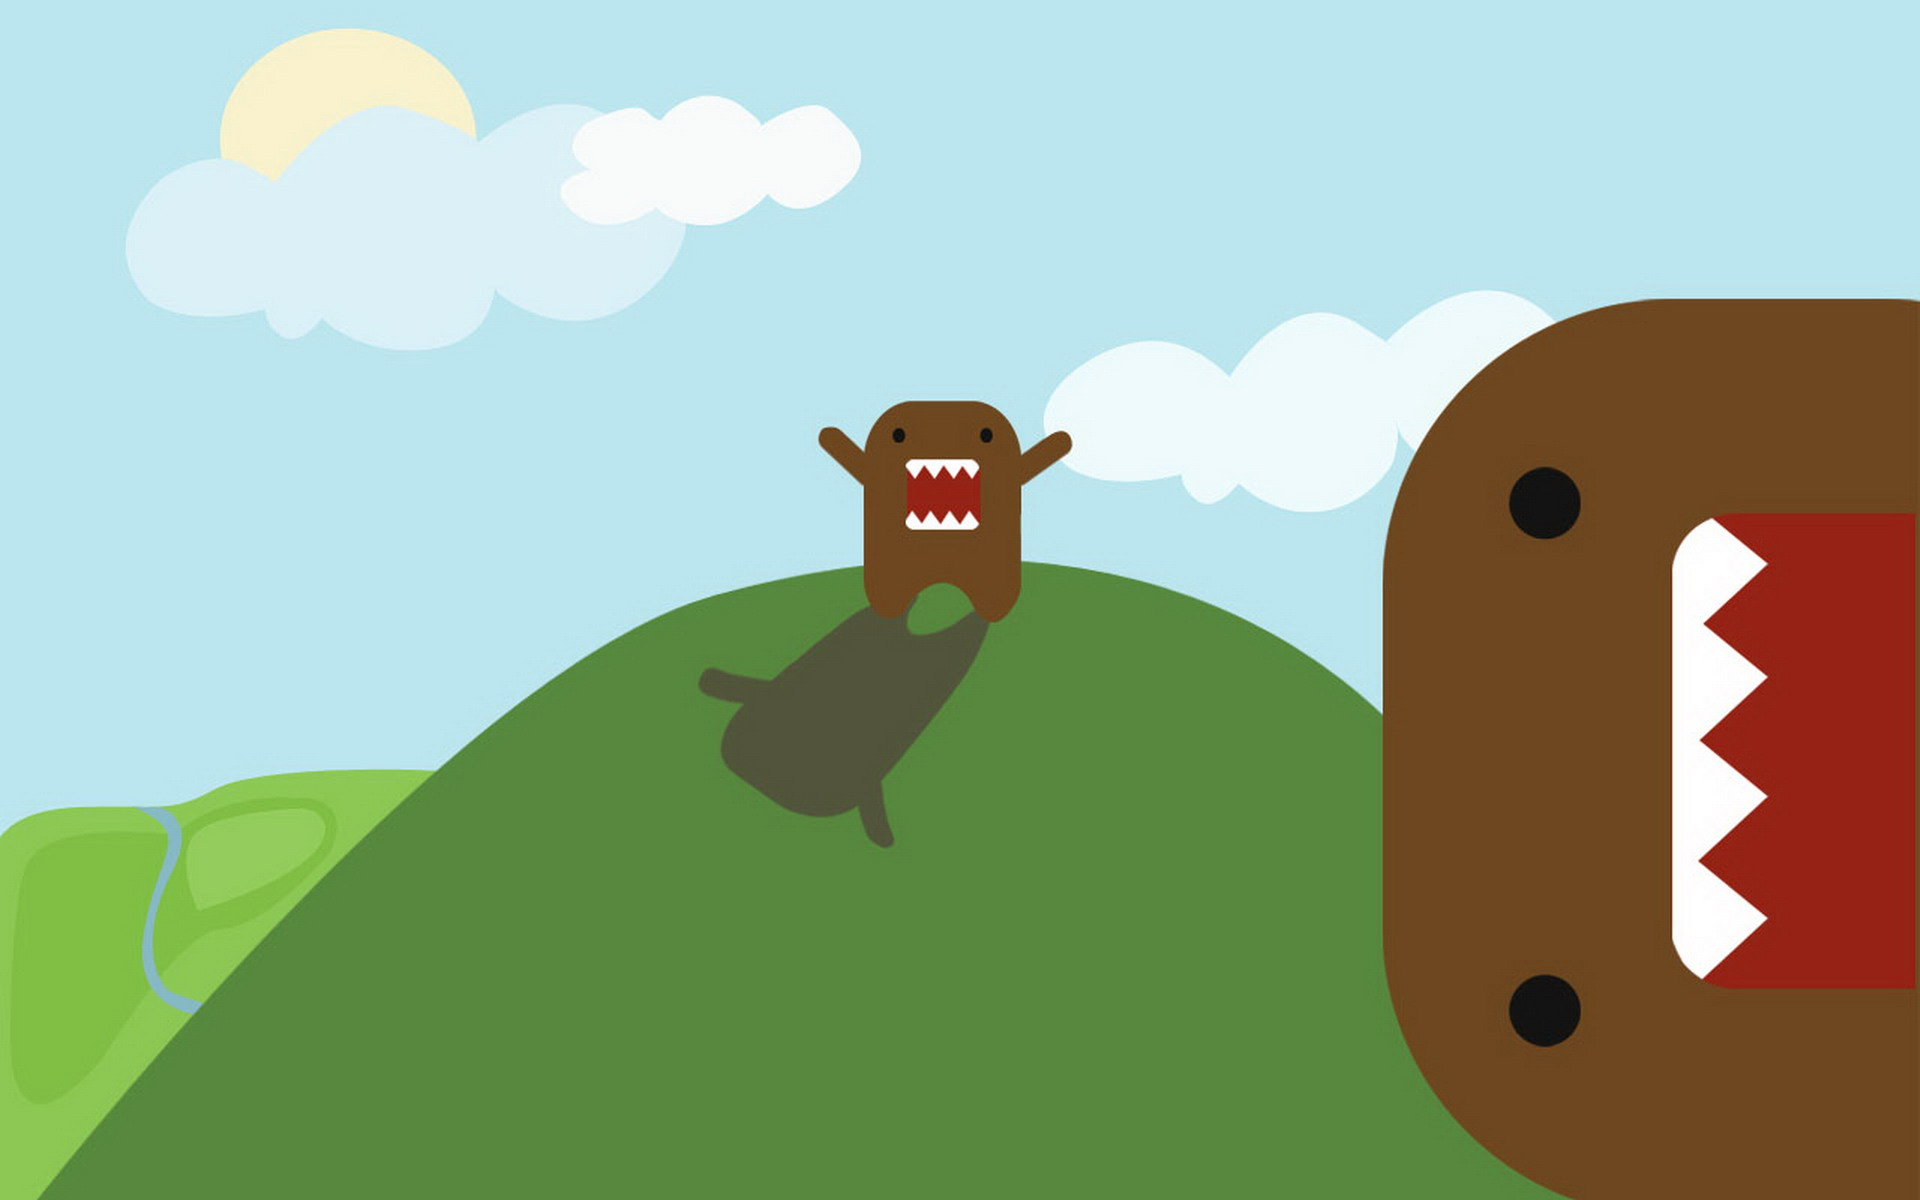 Domo Download Hd Wallpapers Wallpaper 1920x1200px